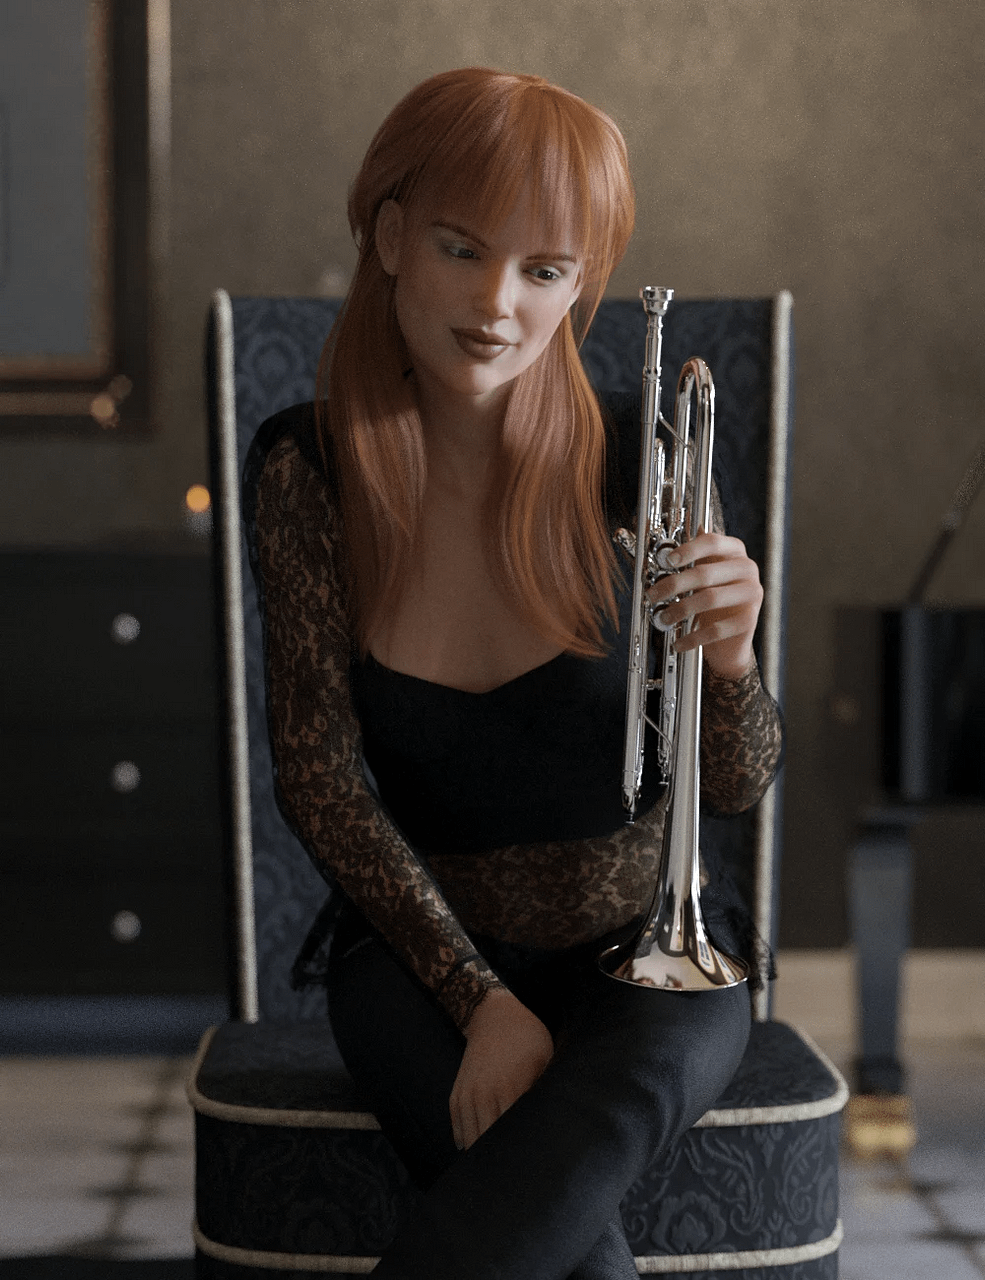 daz hd trumpet and poses for genesis 8